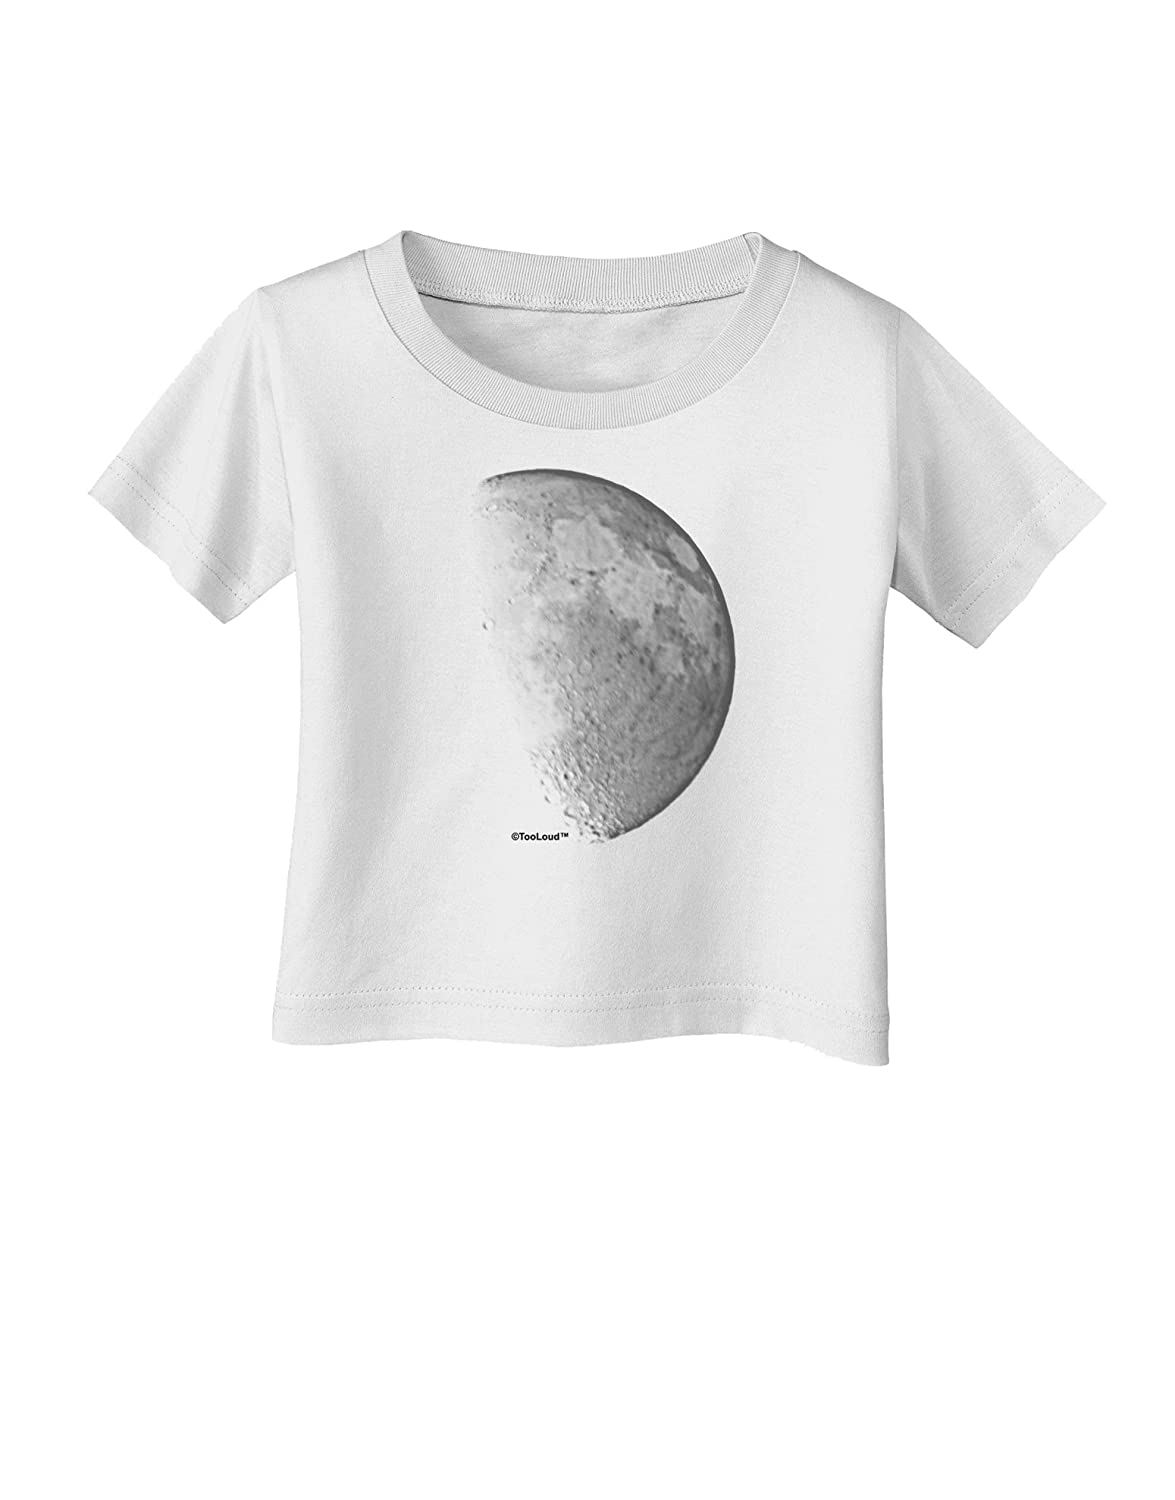 TooLoud Moon Shadow Infant T-Shirt